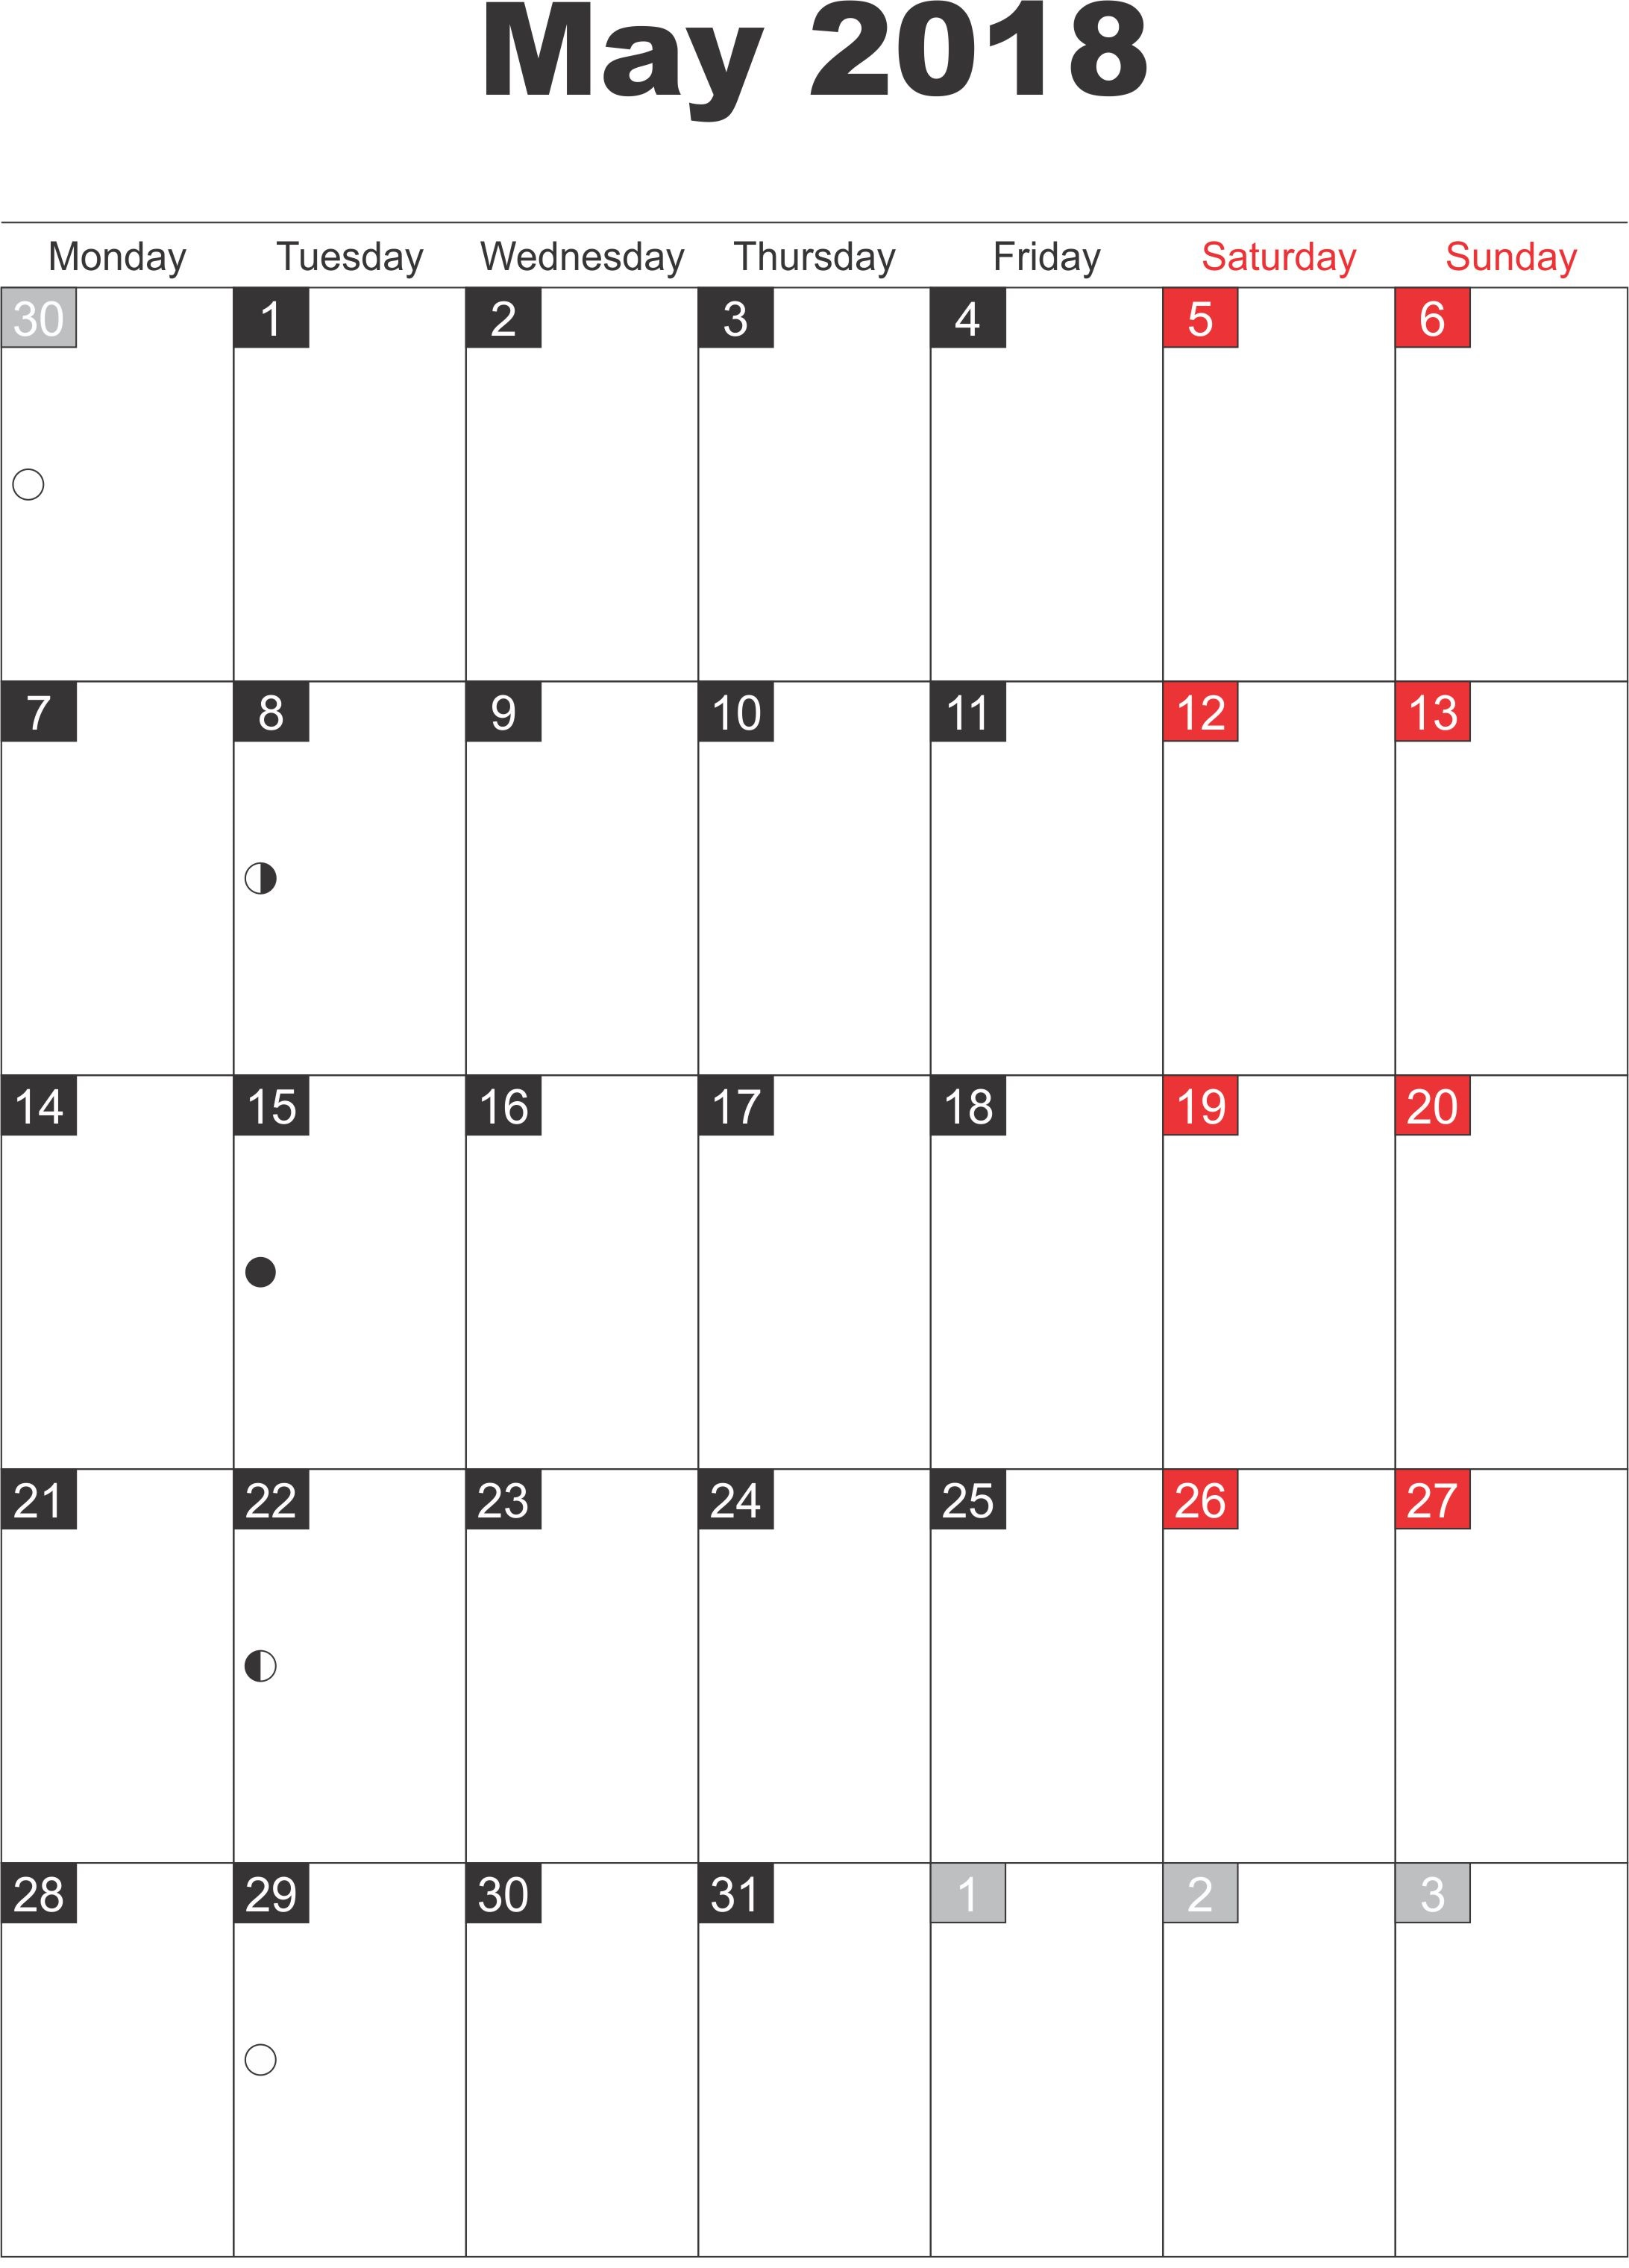 May Printable 2018 Calendar With Holidays